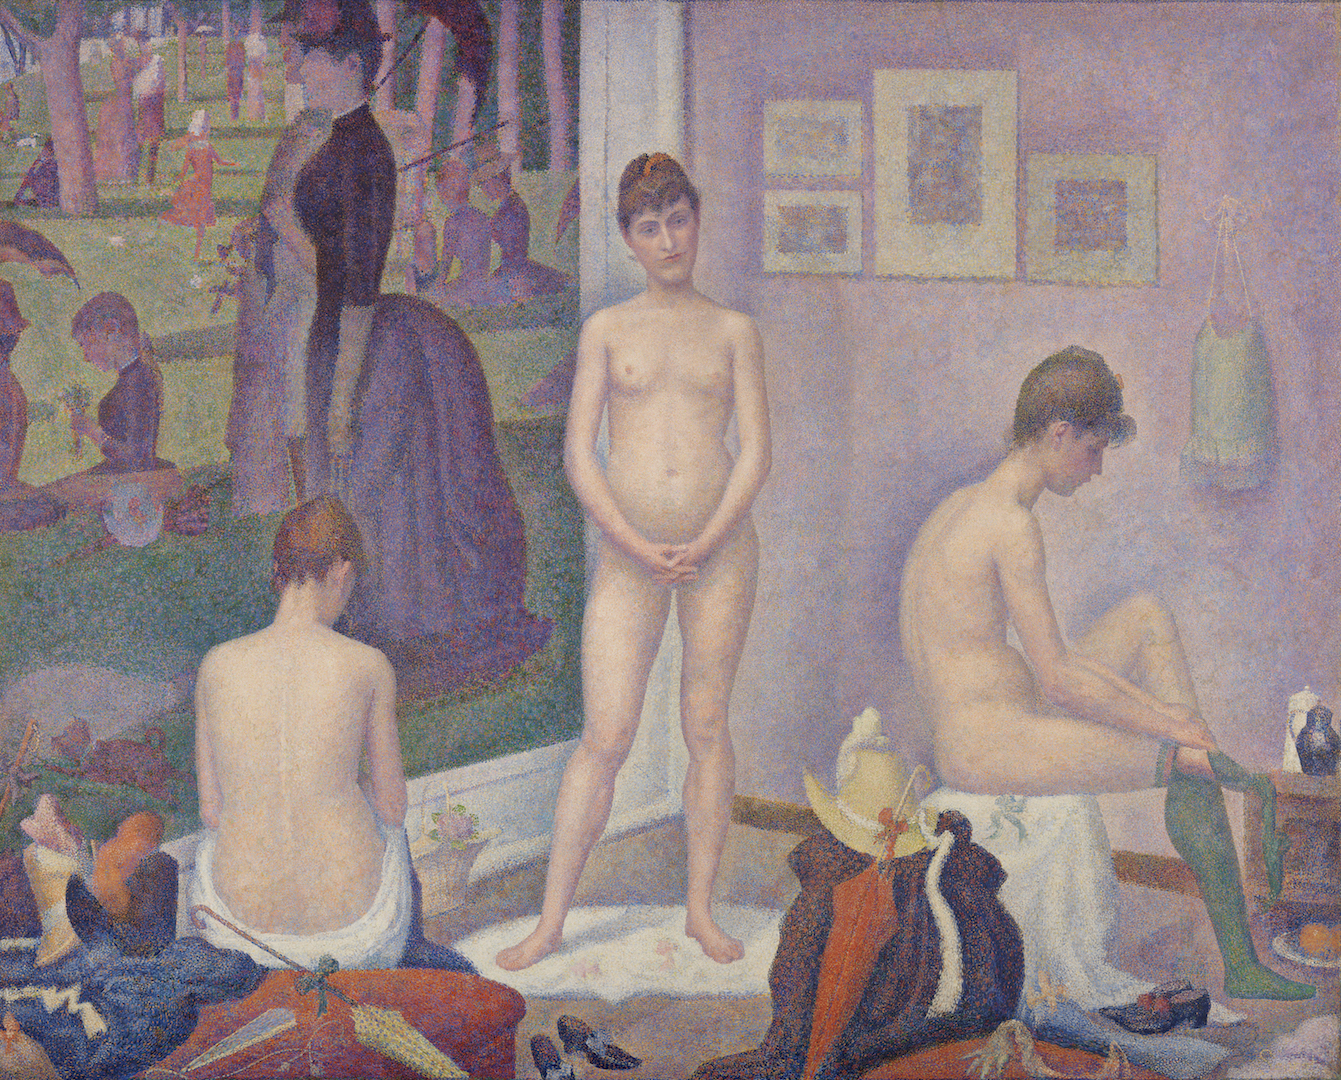 Georges Seurat,  Poseuses,  1886–1888, oil on canvas, 78 3/4 x 98 3/8 in. The Barnes Foundation, BF811.